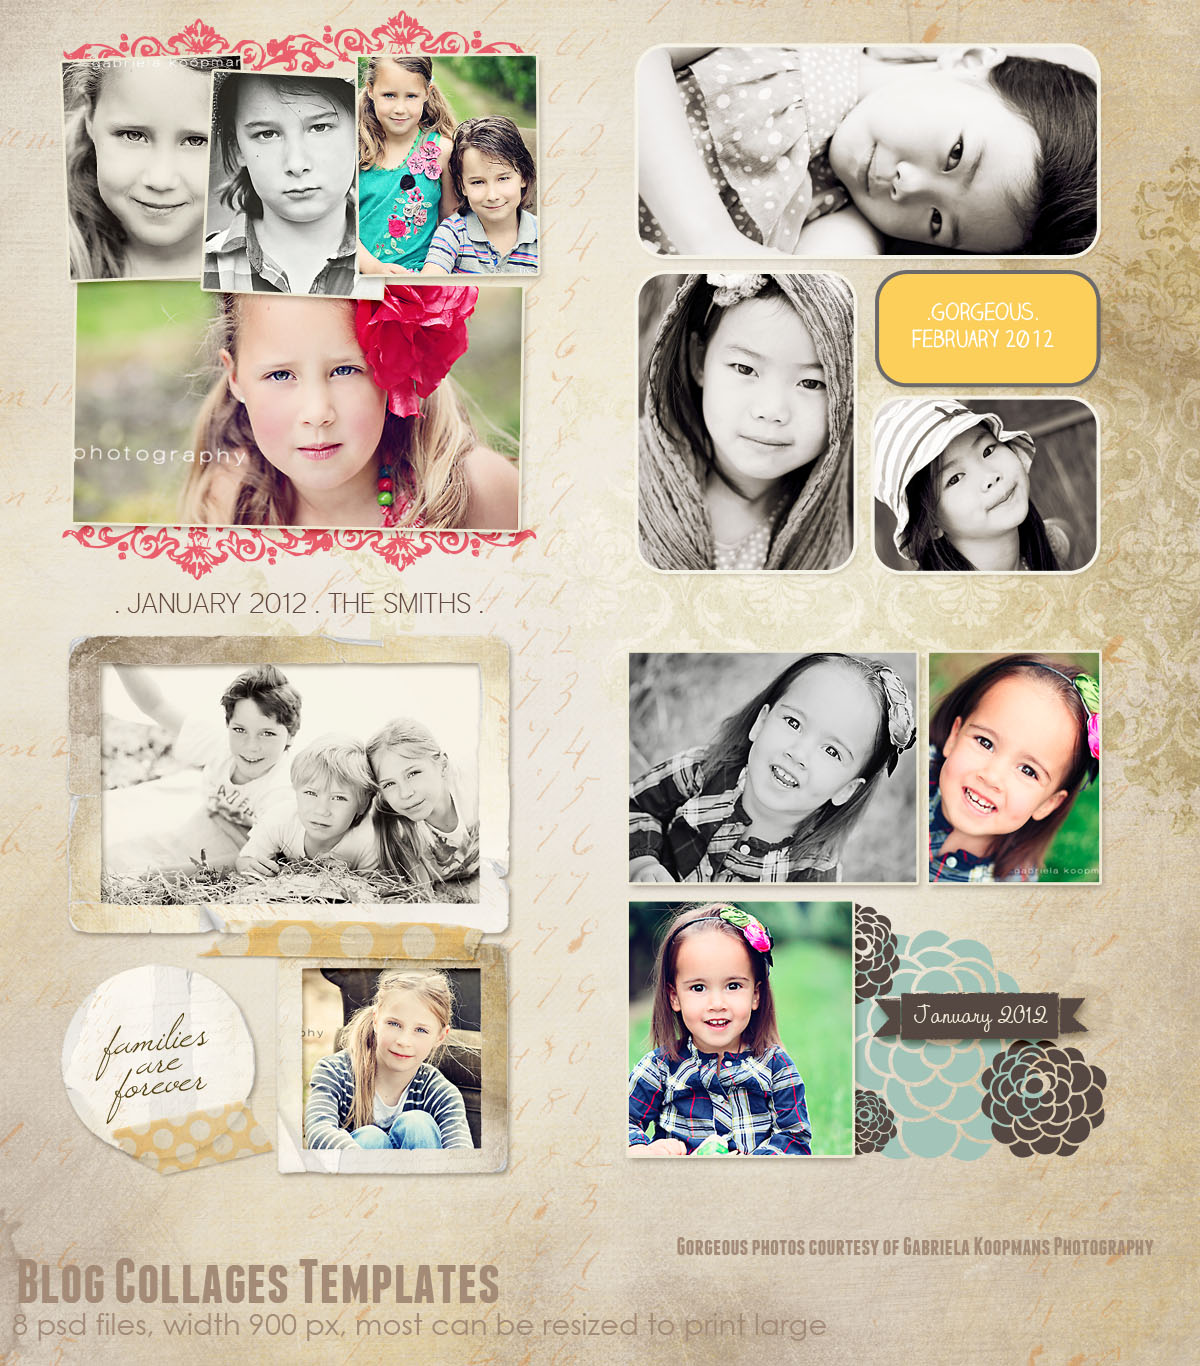 Blog/Storyboard Collages Templates